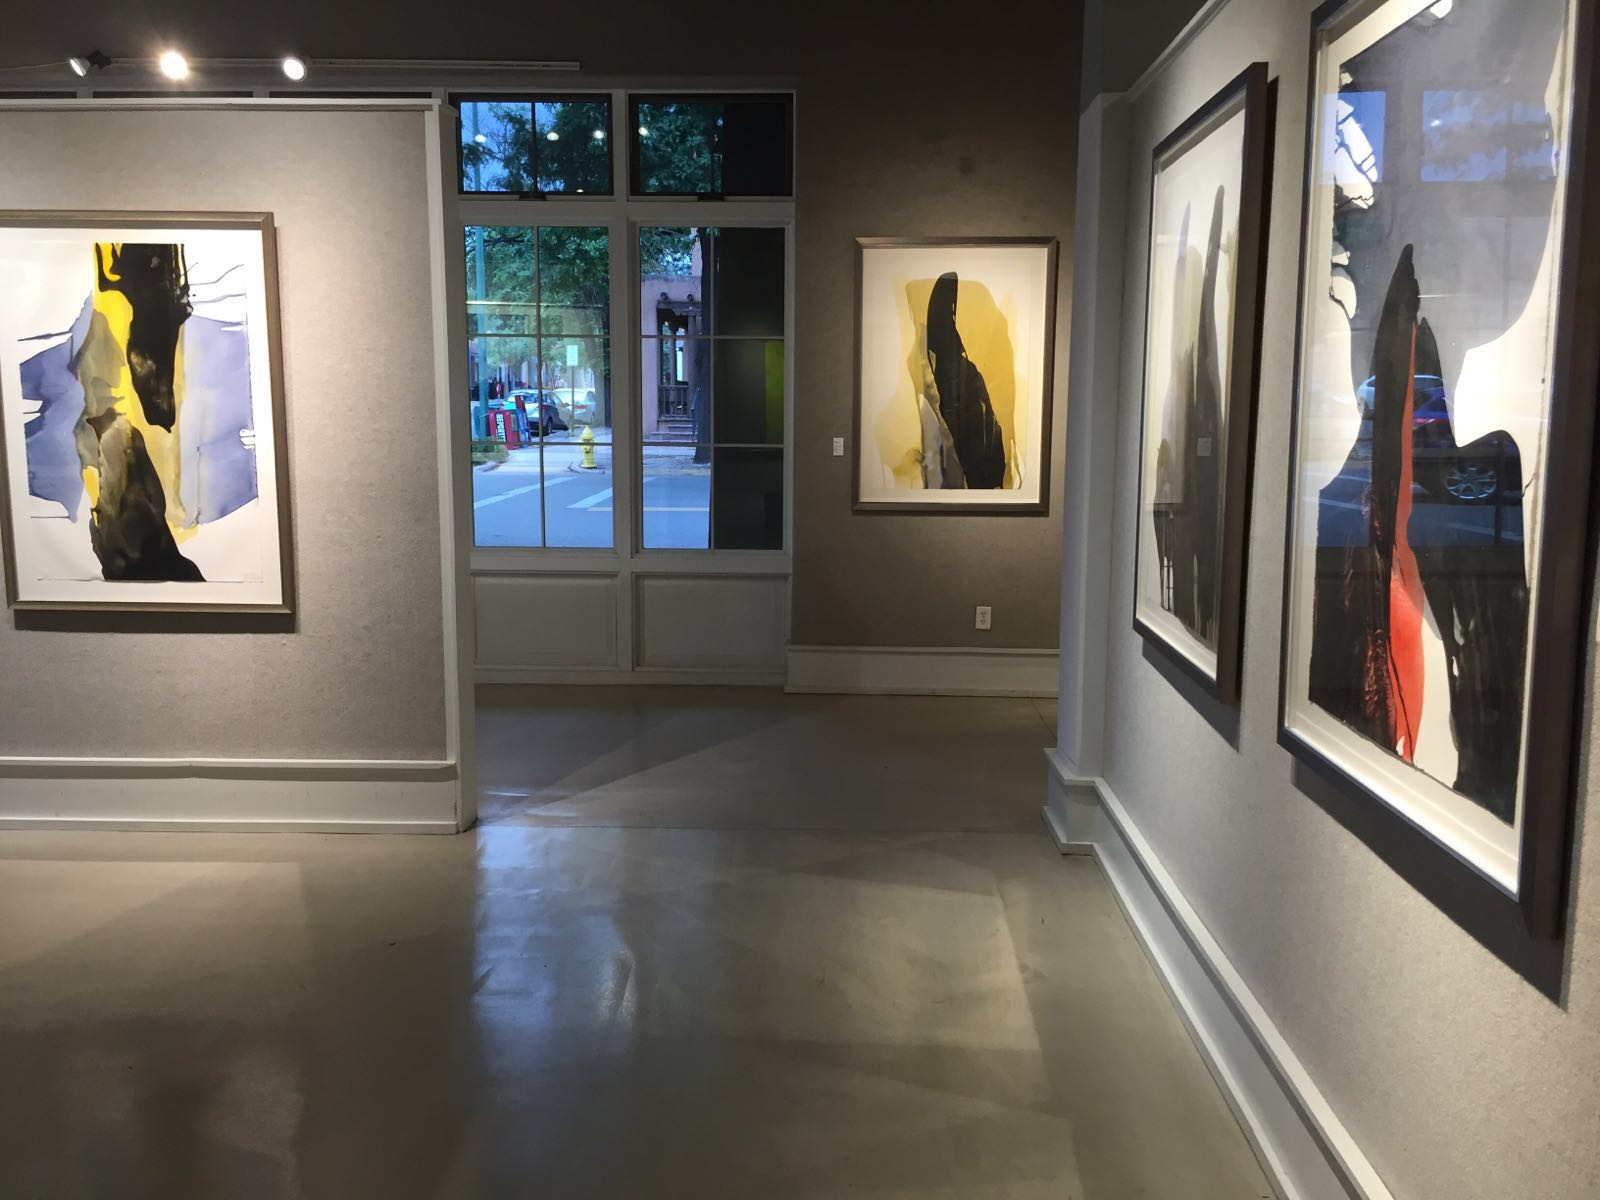 Exhibit at Dvaid Rothermel Santa Fe, JUly 2016